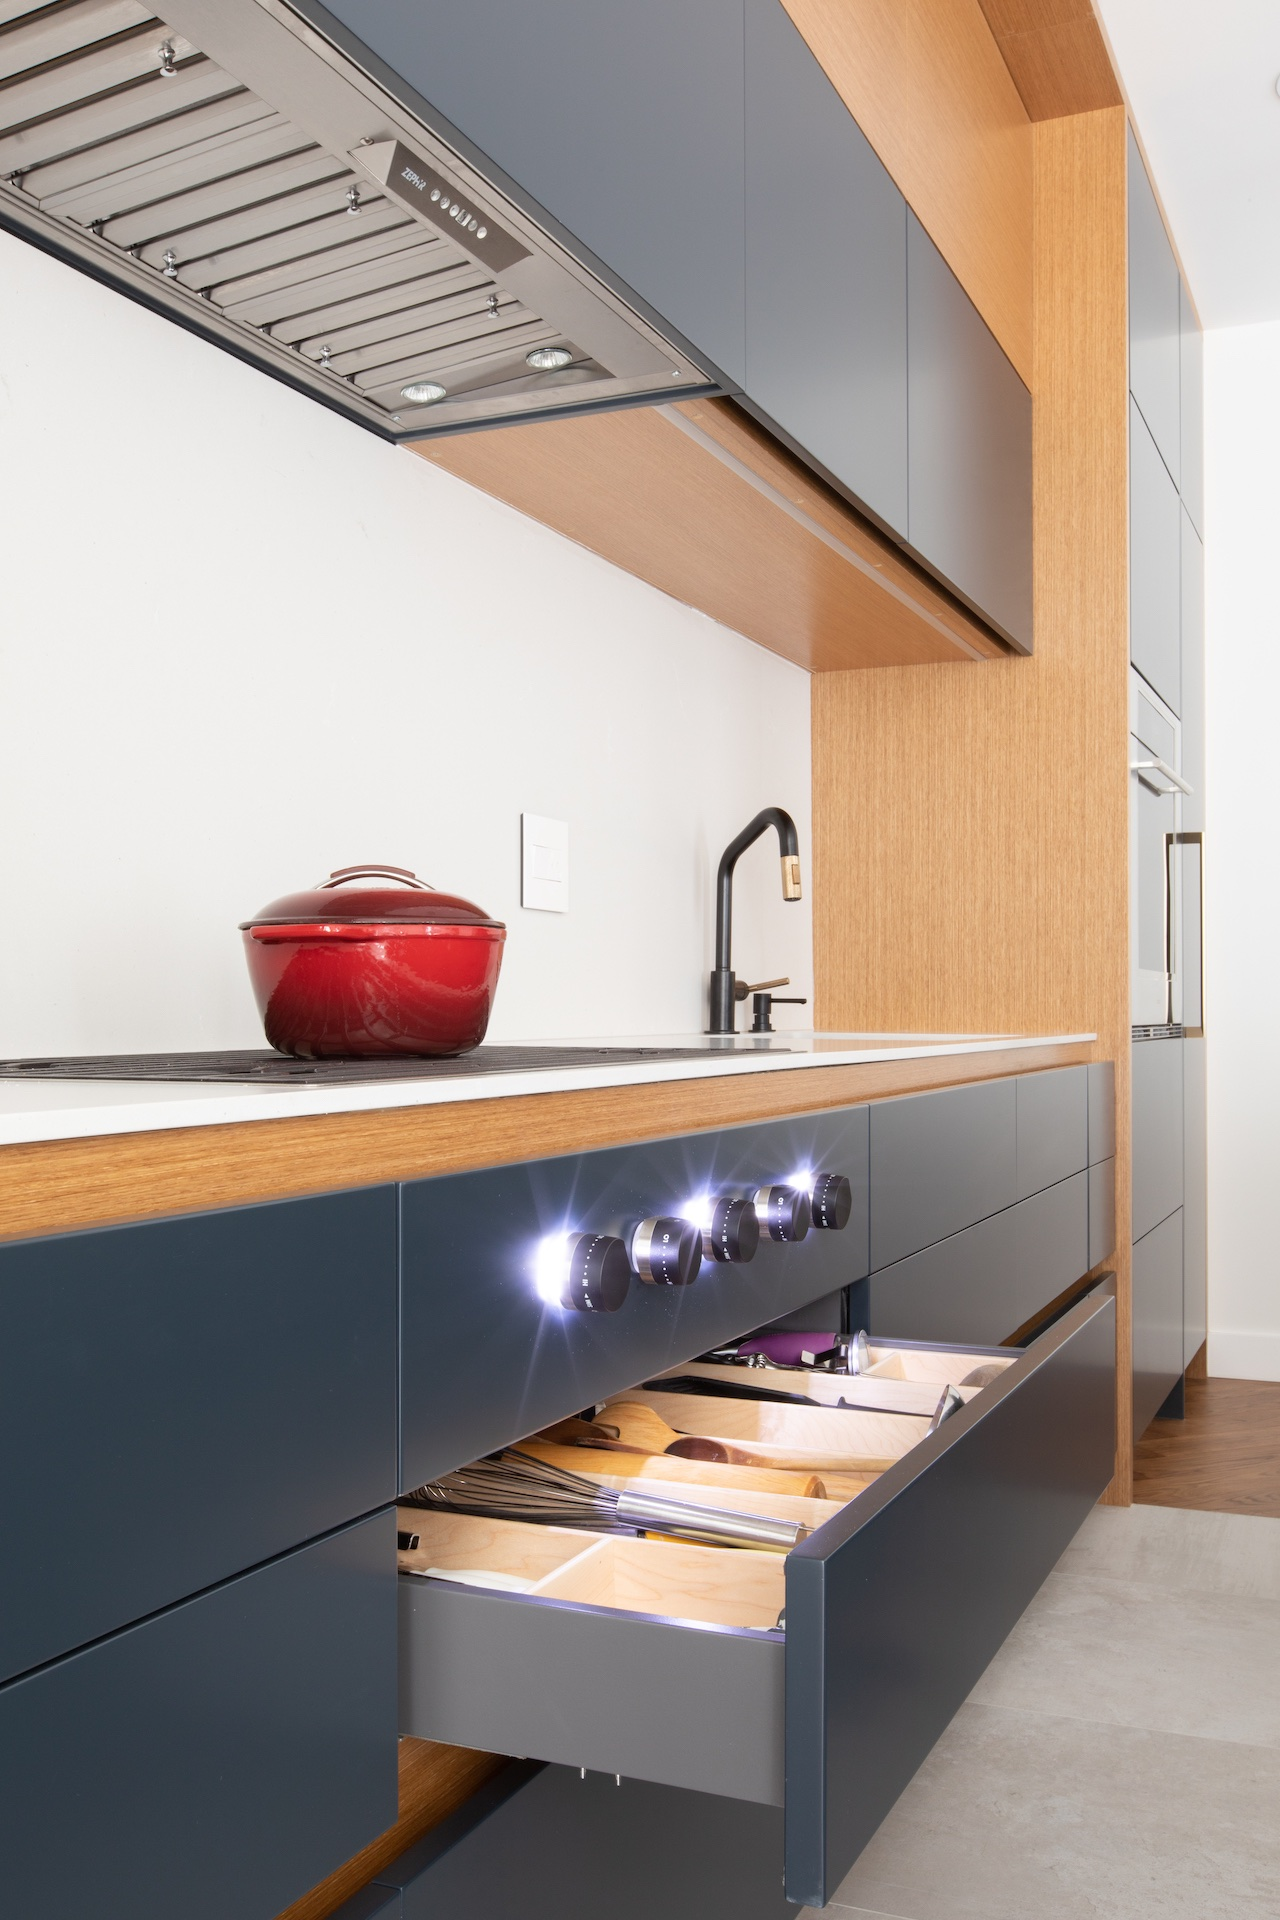 Natural wood and blue kitchen with drawer open and oven